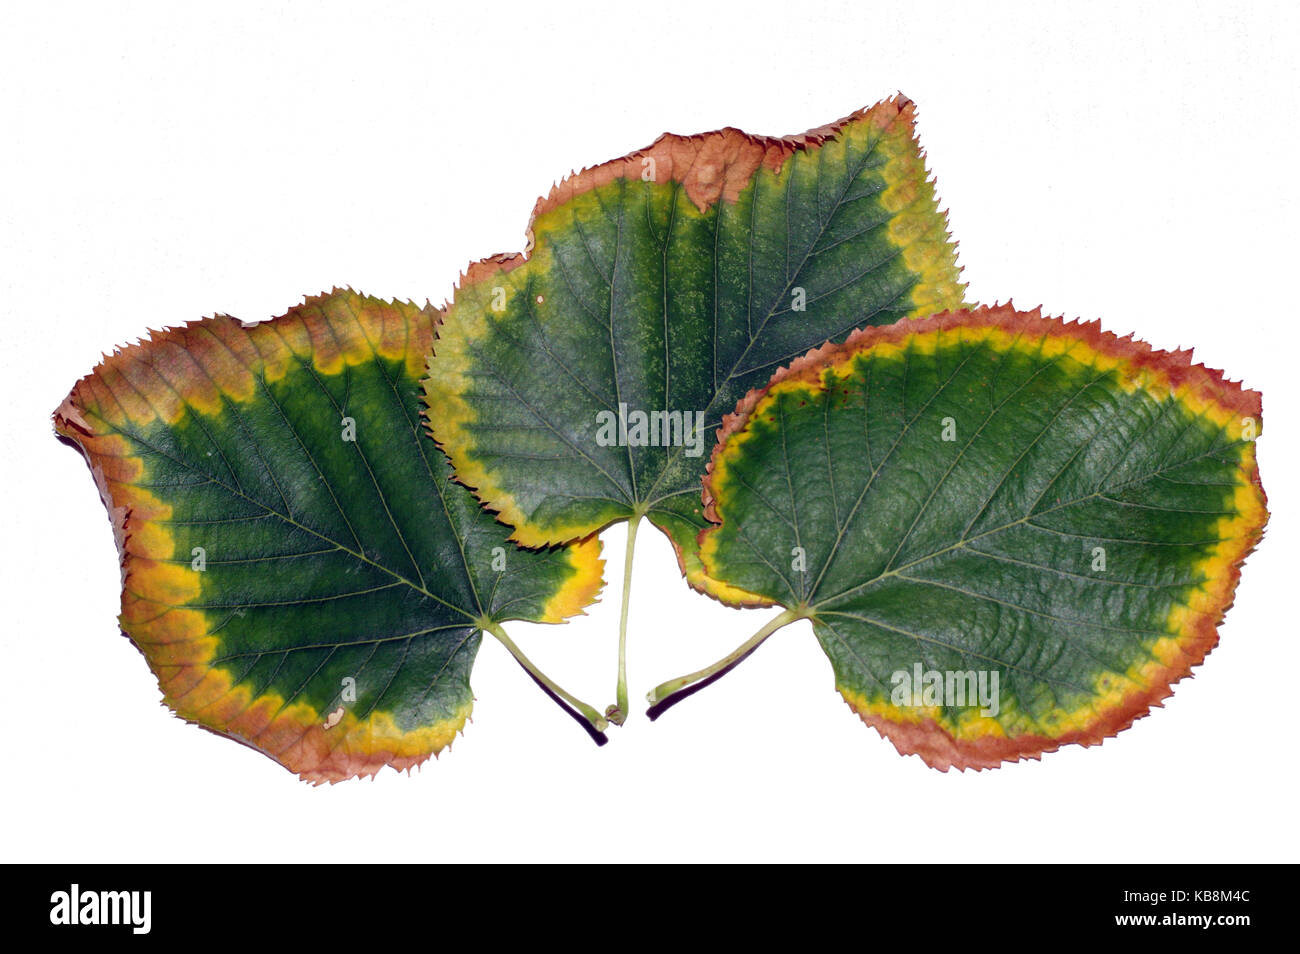 Lime tree leaves in autumn on white background - Stock Image